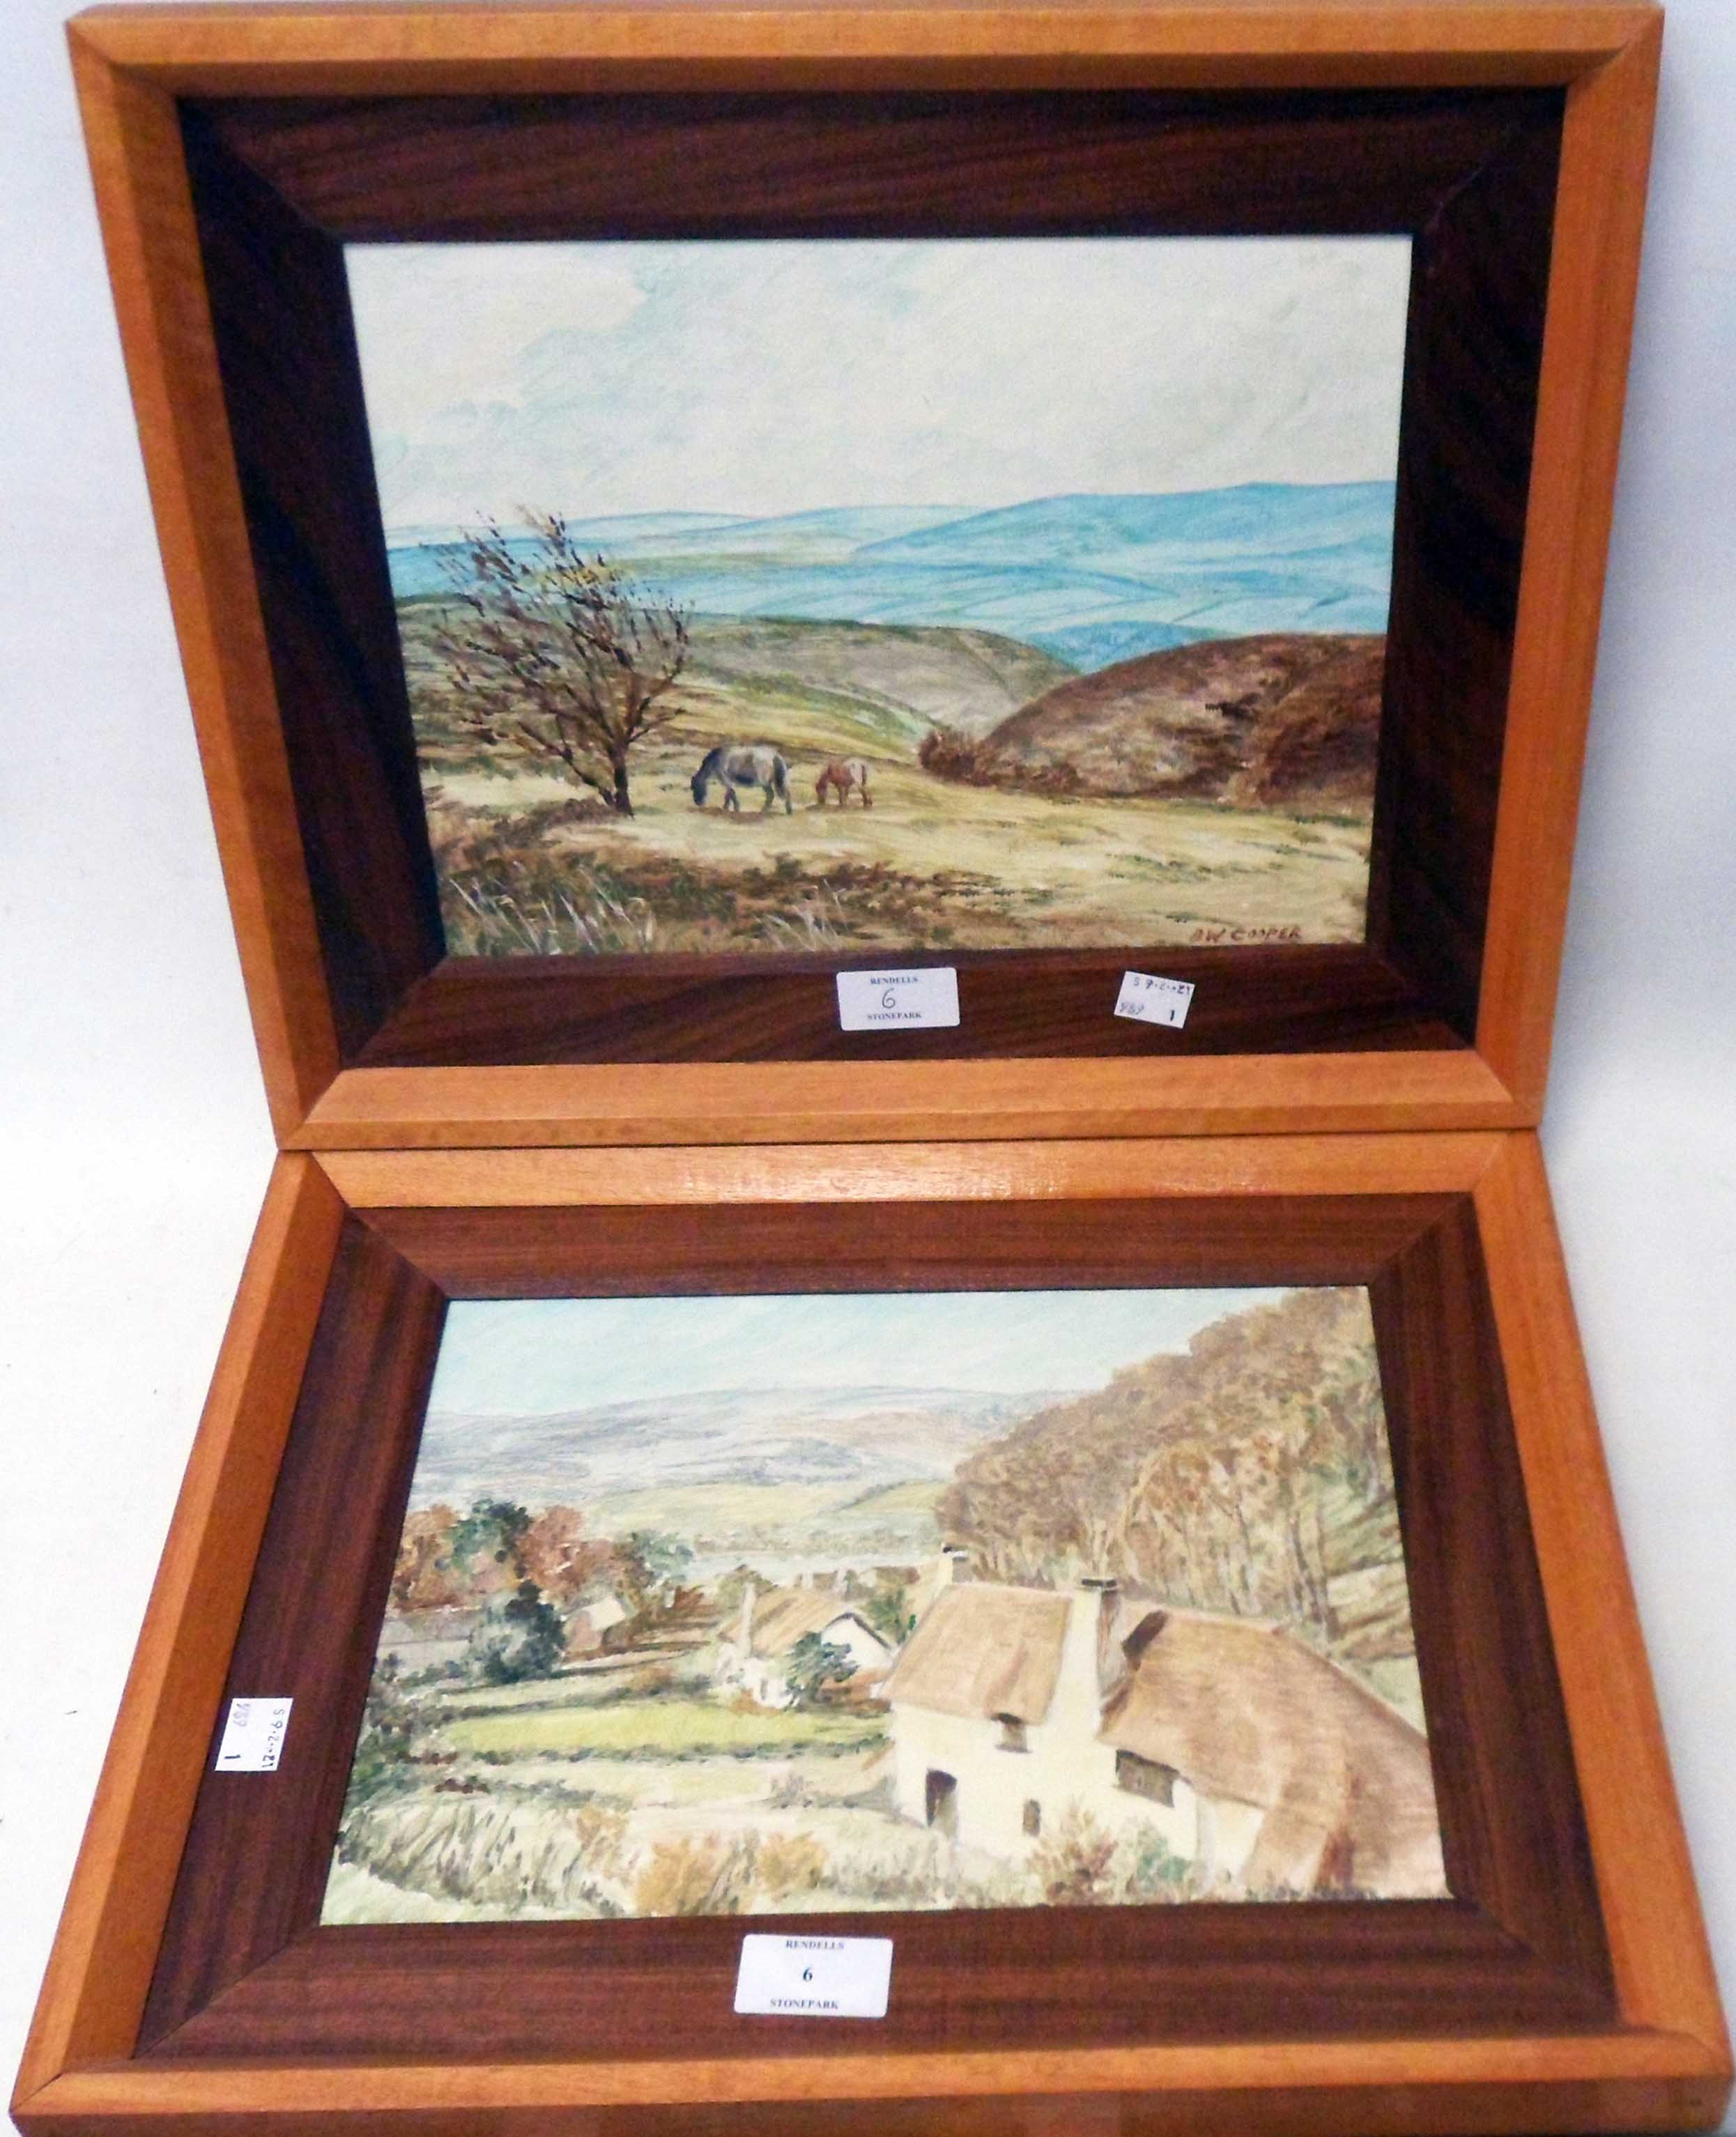 B. W. Cooper: a pair of polished wood framed oils on board, one entitled Exmoor Ponies, the other